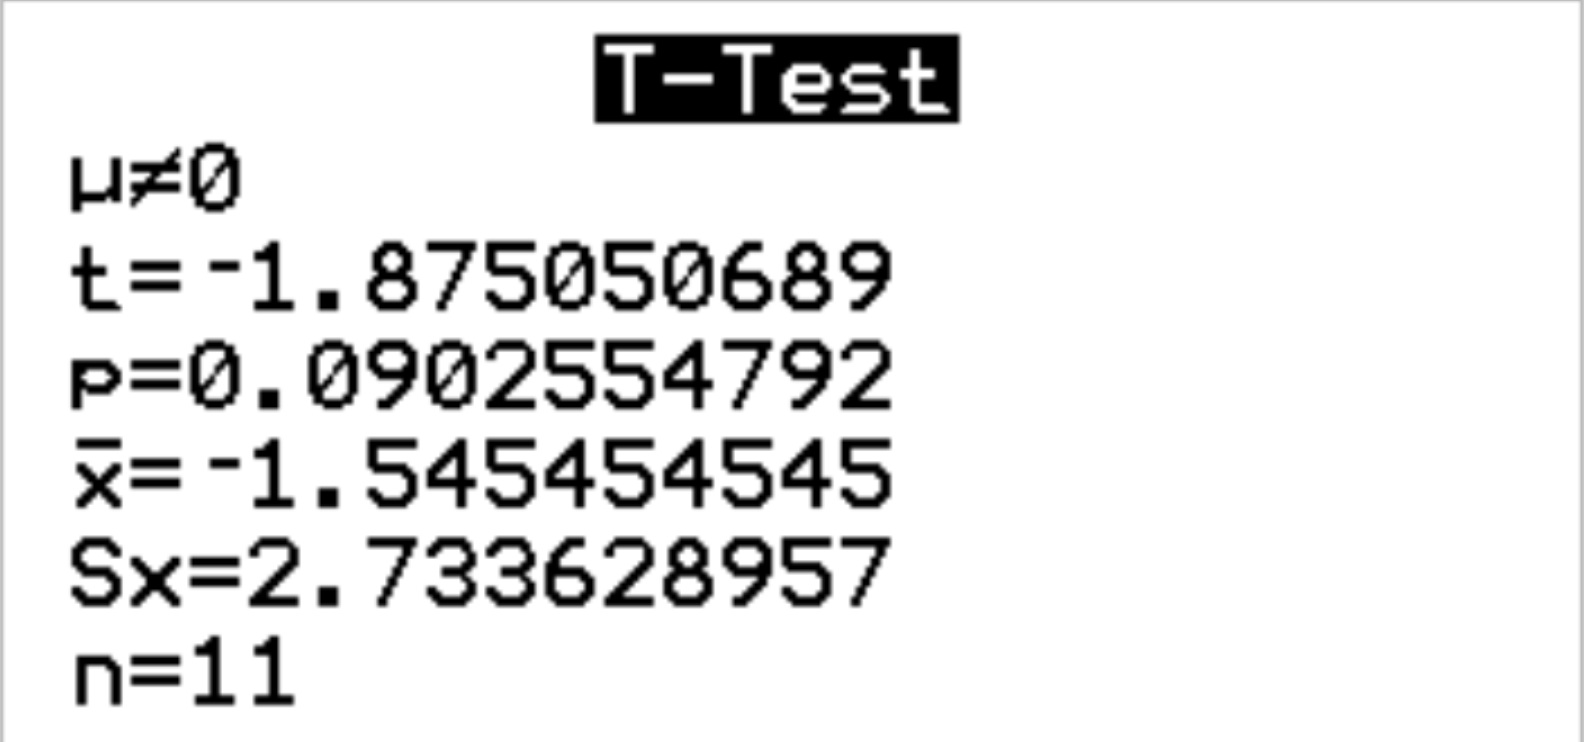 Output of paired t-test on TI-84 calculator